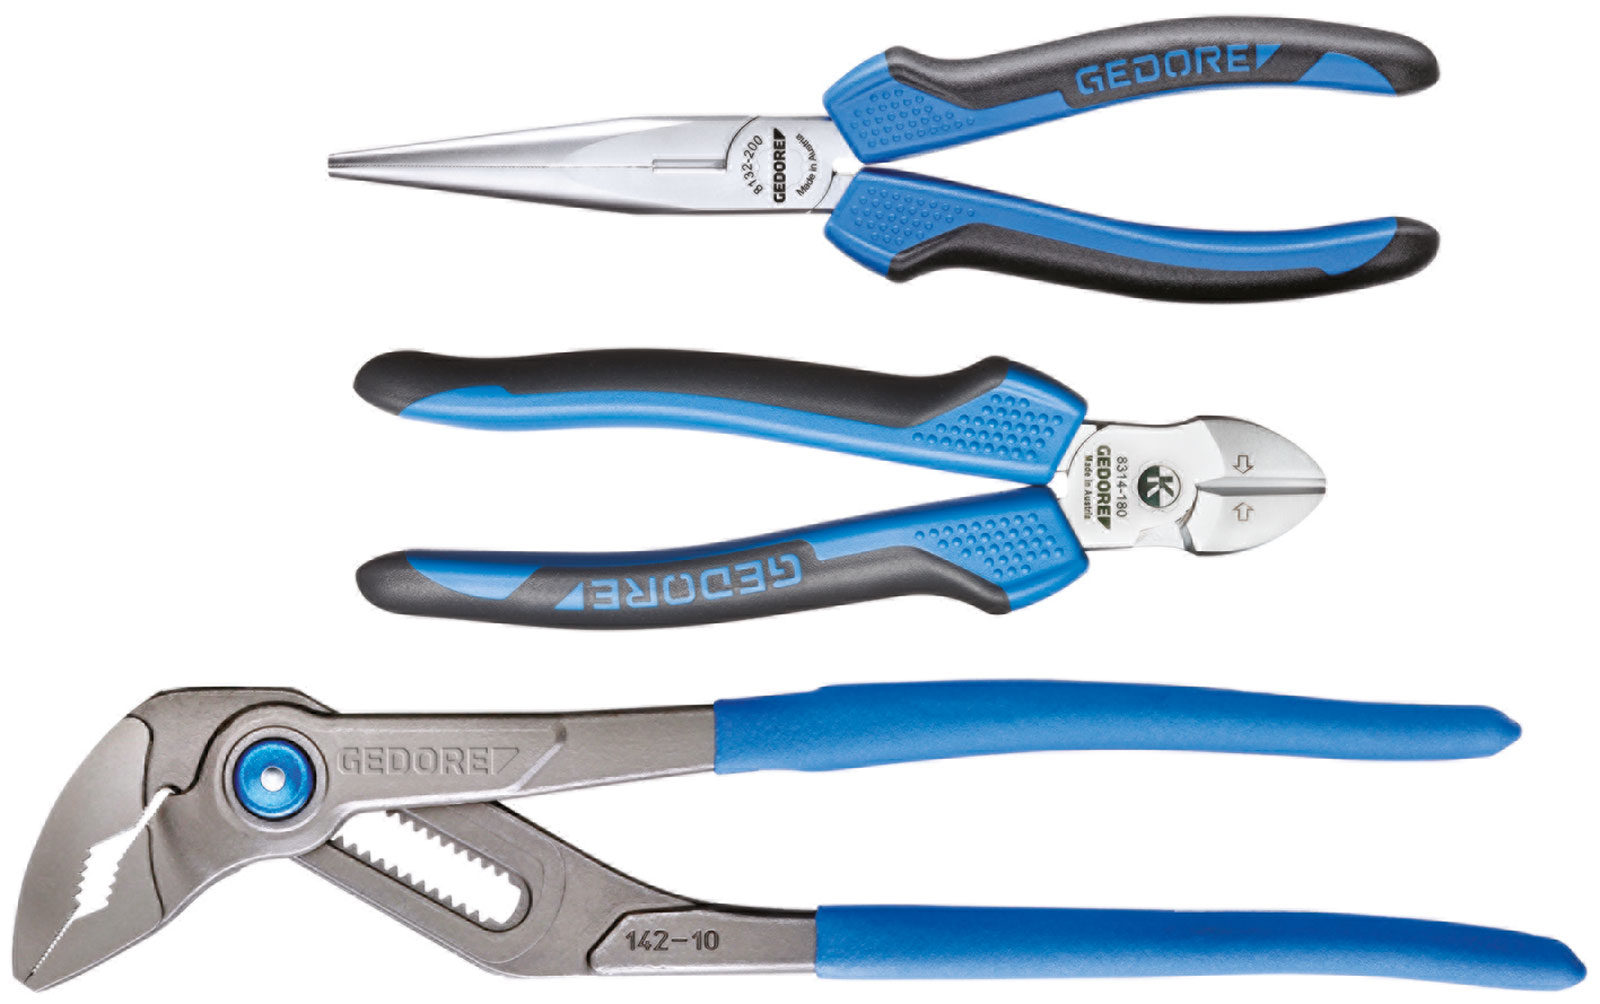 Gedore 1102-007 Pliers 3 piece Set in L-BOXX Mini